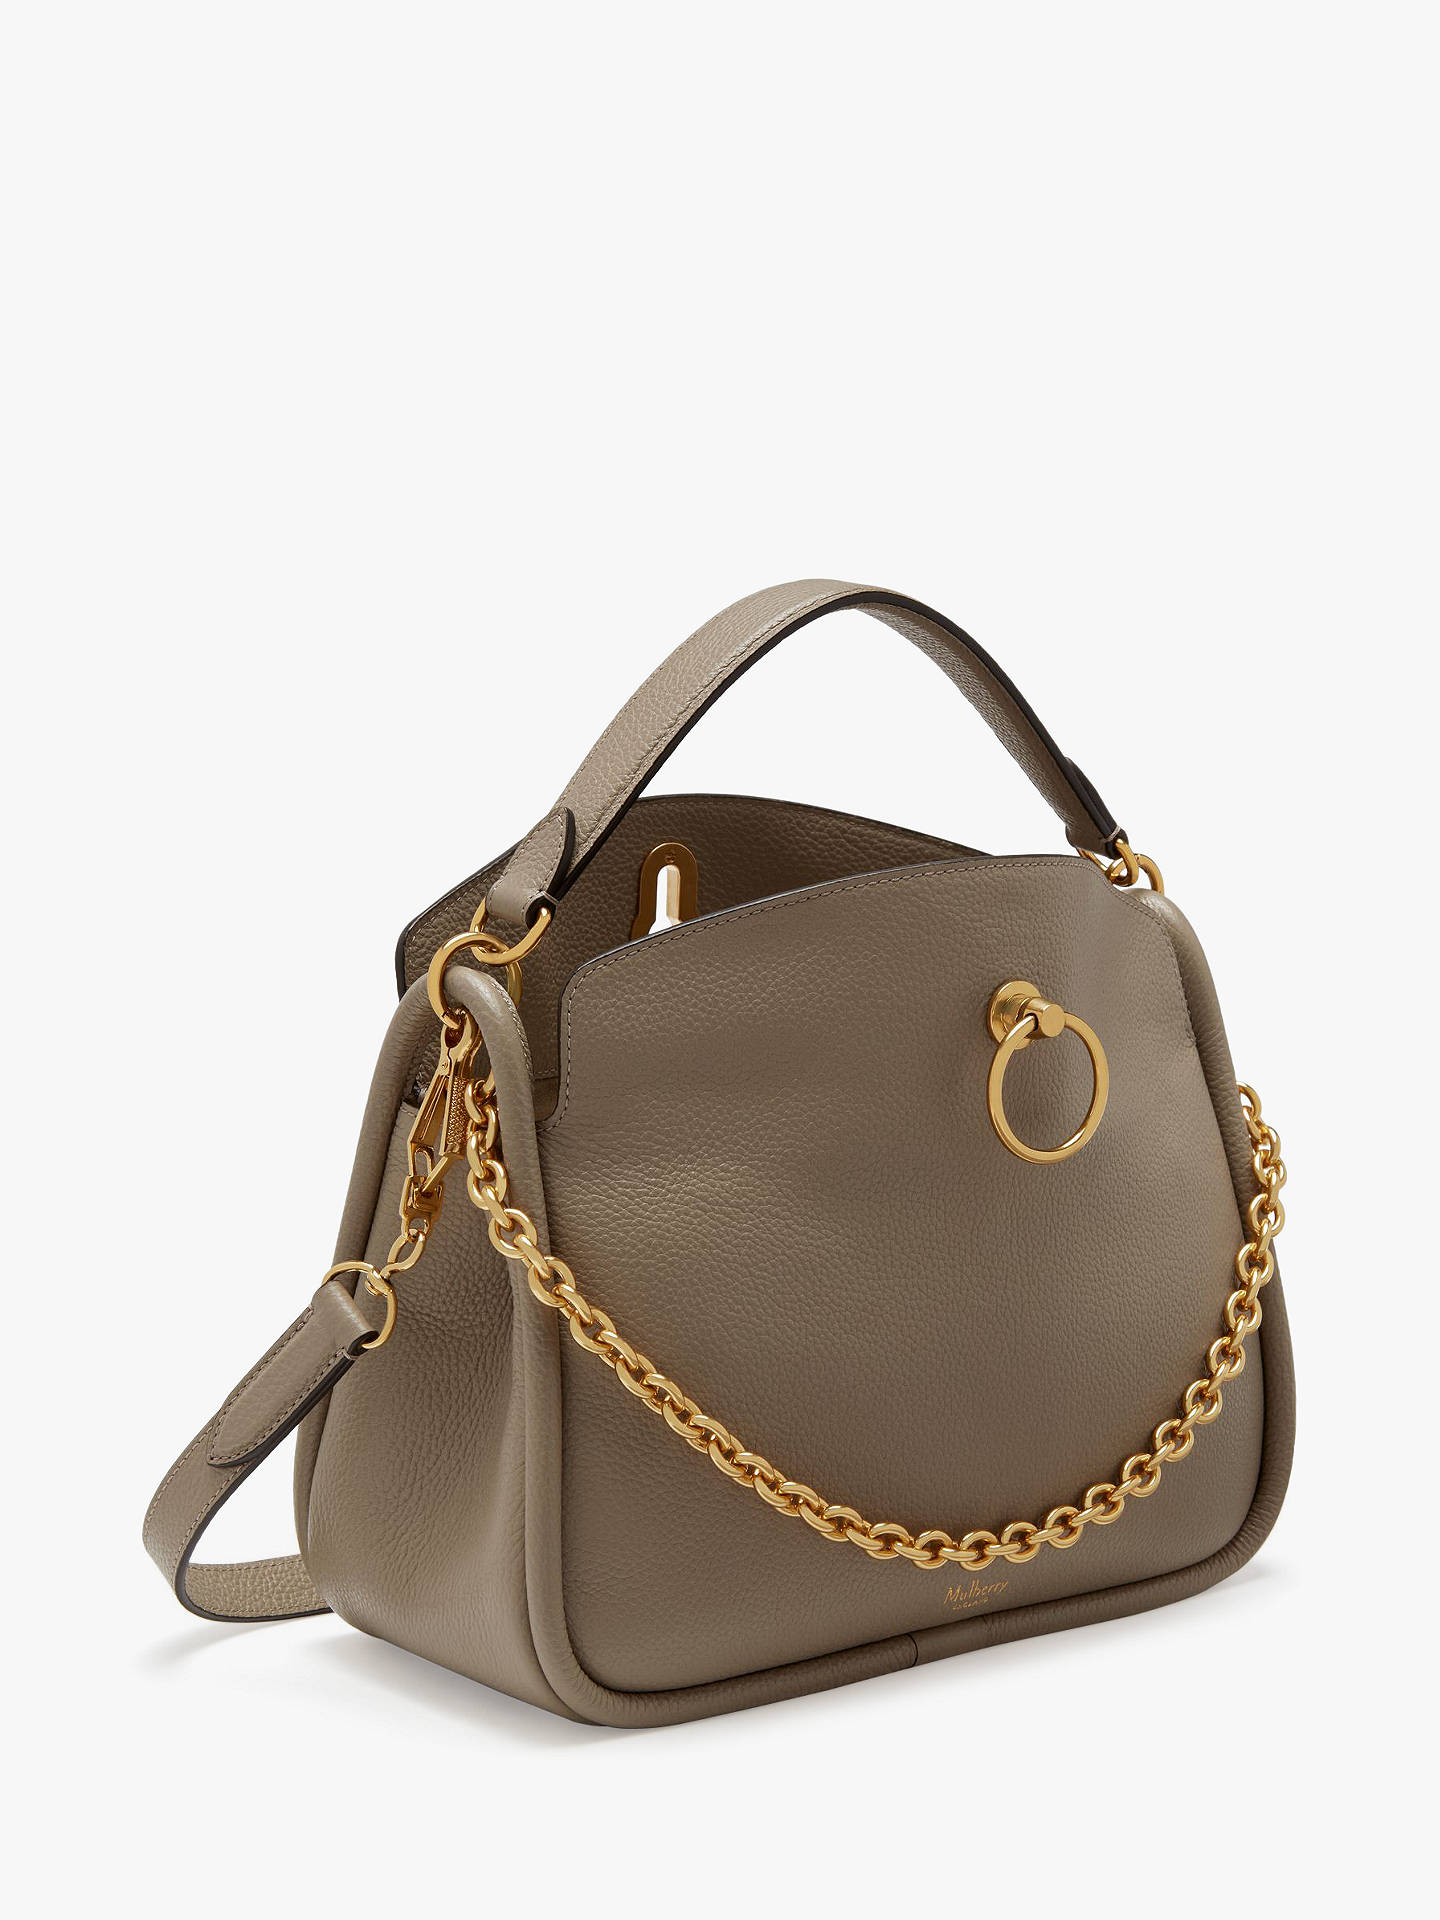 3ad7ce94ee44 Mulberry Small Leighton Classic Grain Leather Shoulder Bag at John ...